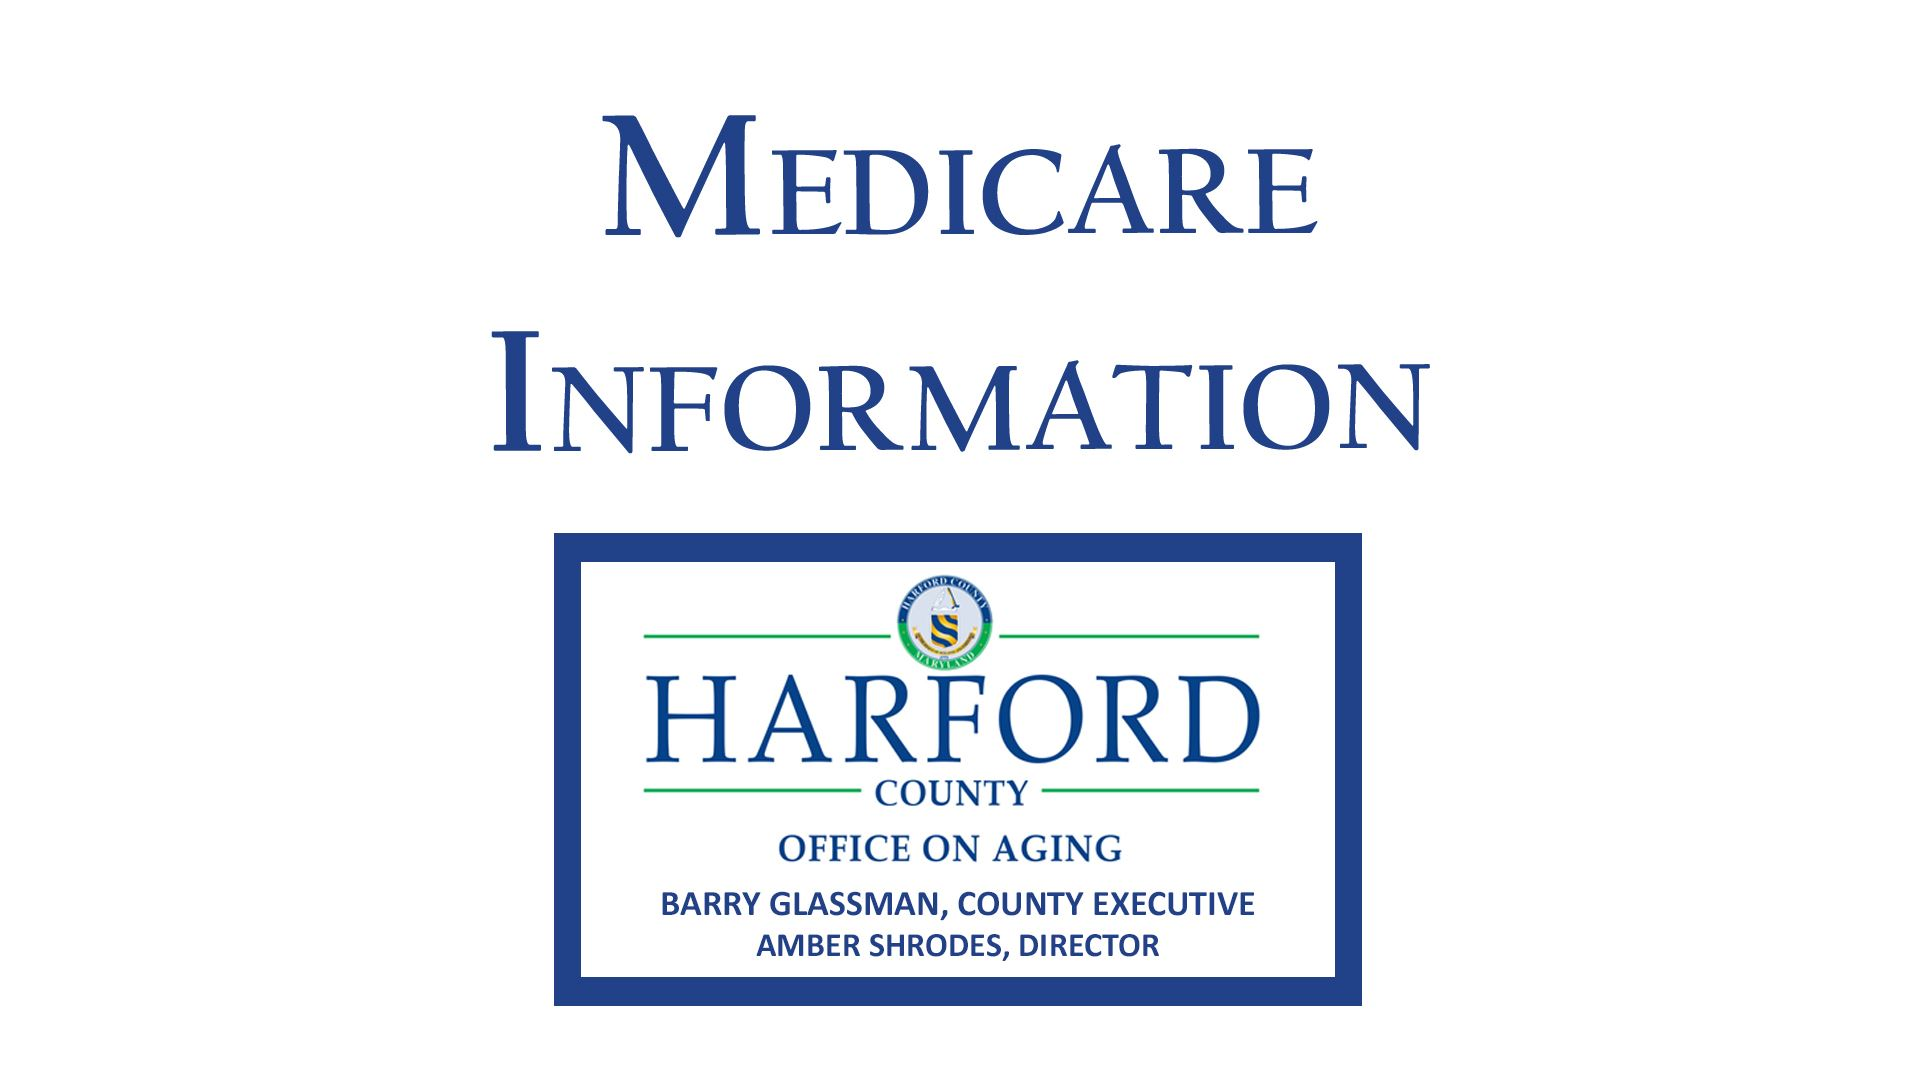 Medicare Information Click Here Button